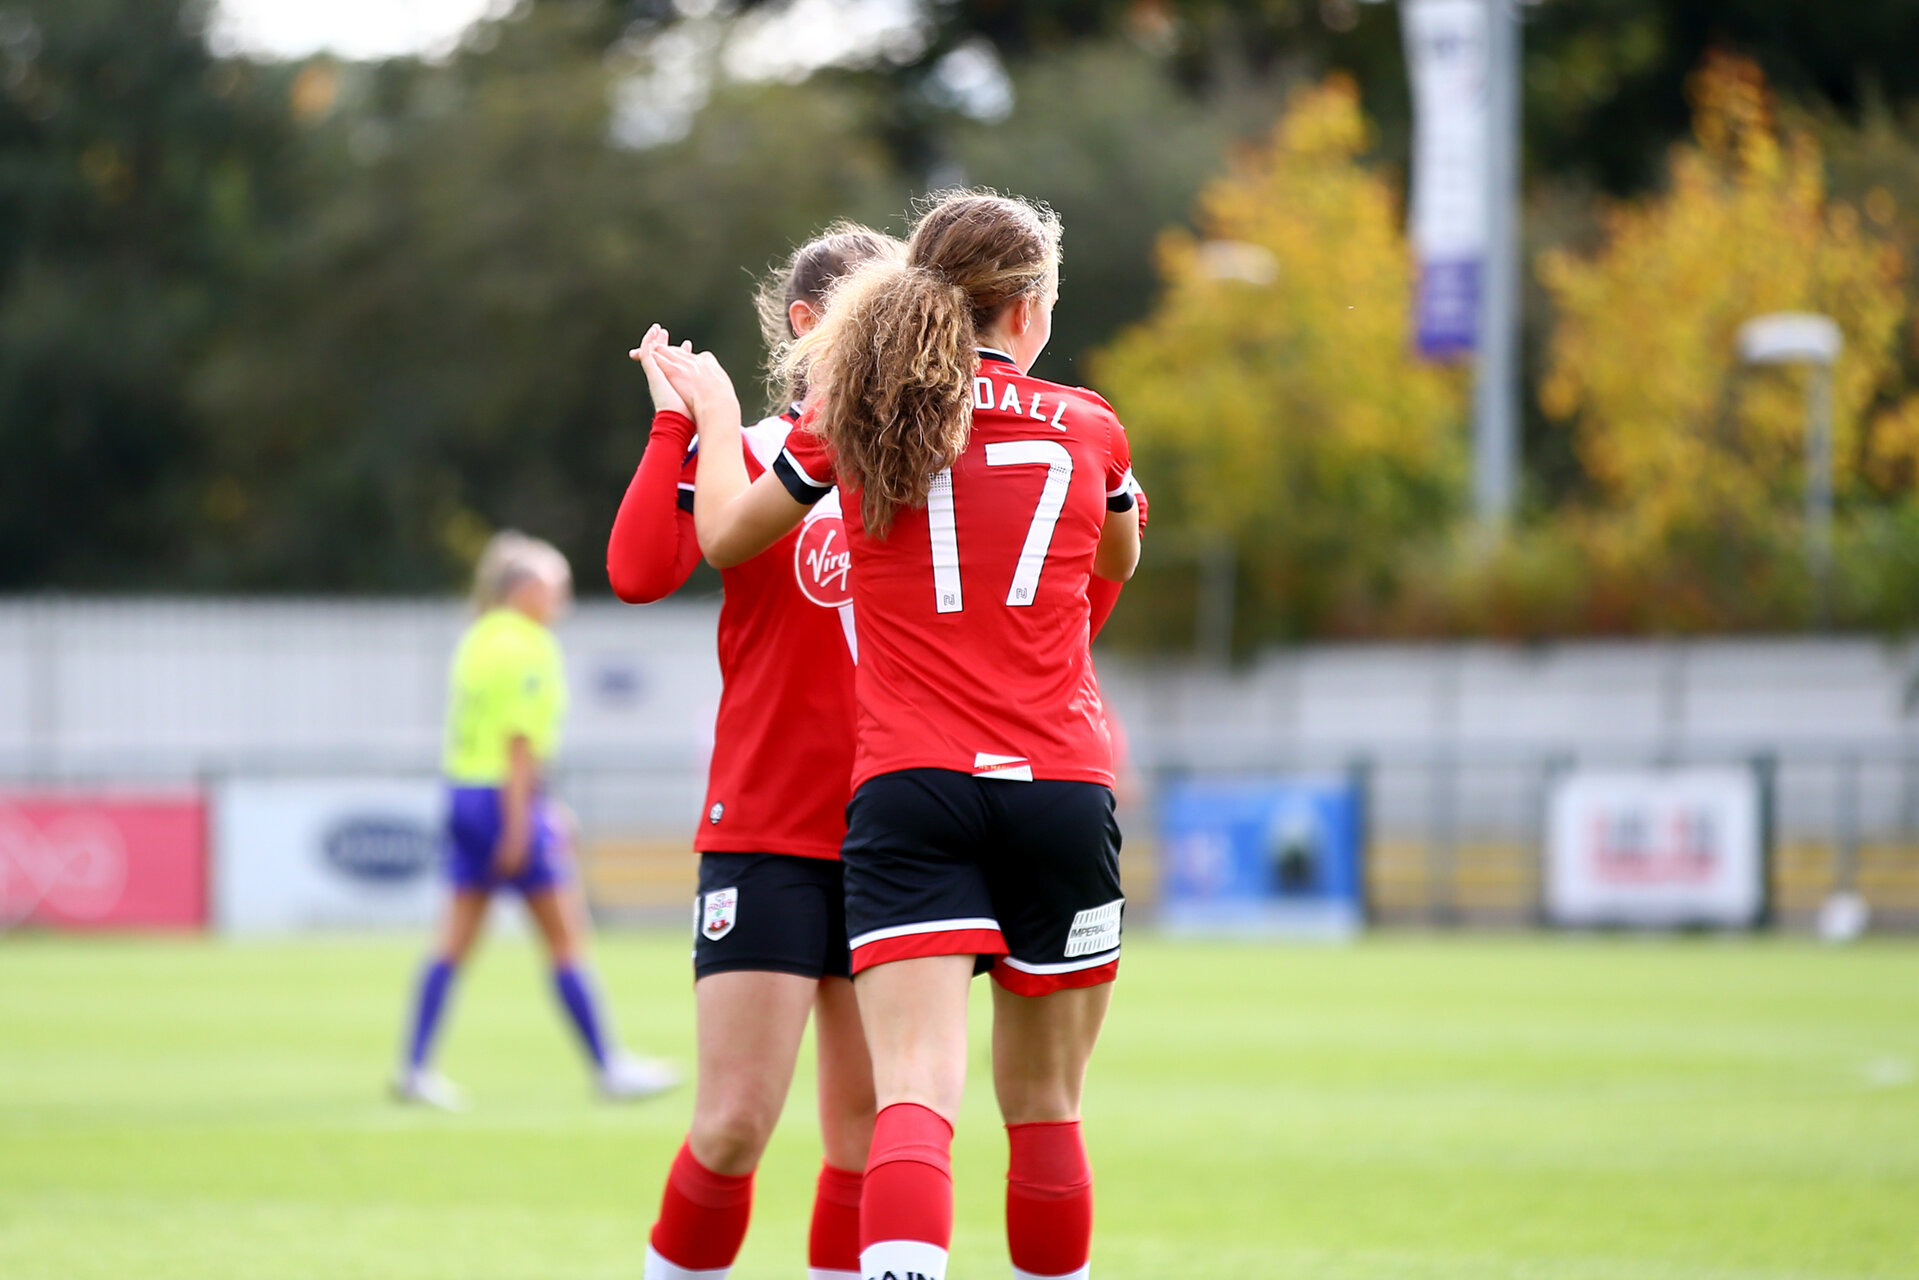 SOUTHAMPTON, ENGLAND - OCTOBER 11: Lucia Kendall of Southampton goal celebration during FAWNL match between Southampton Women and Exeter City at Snows Stadium on October 11, 2020 in Southampton, England. (Photo by Isabelle Field/Southampton FC via Getty Images)